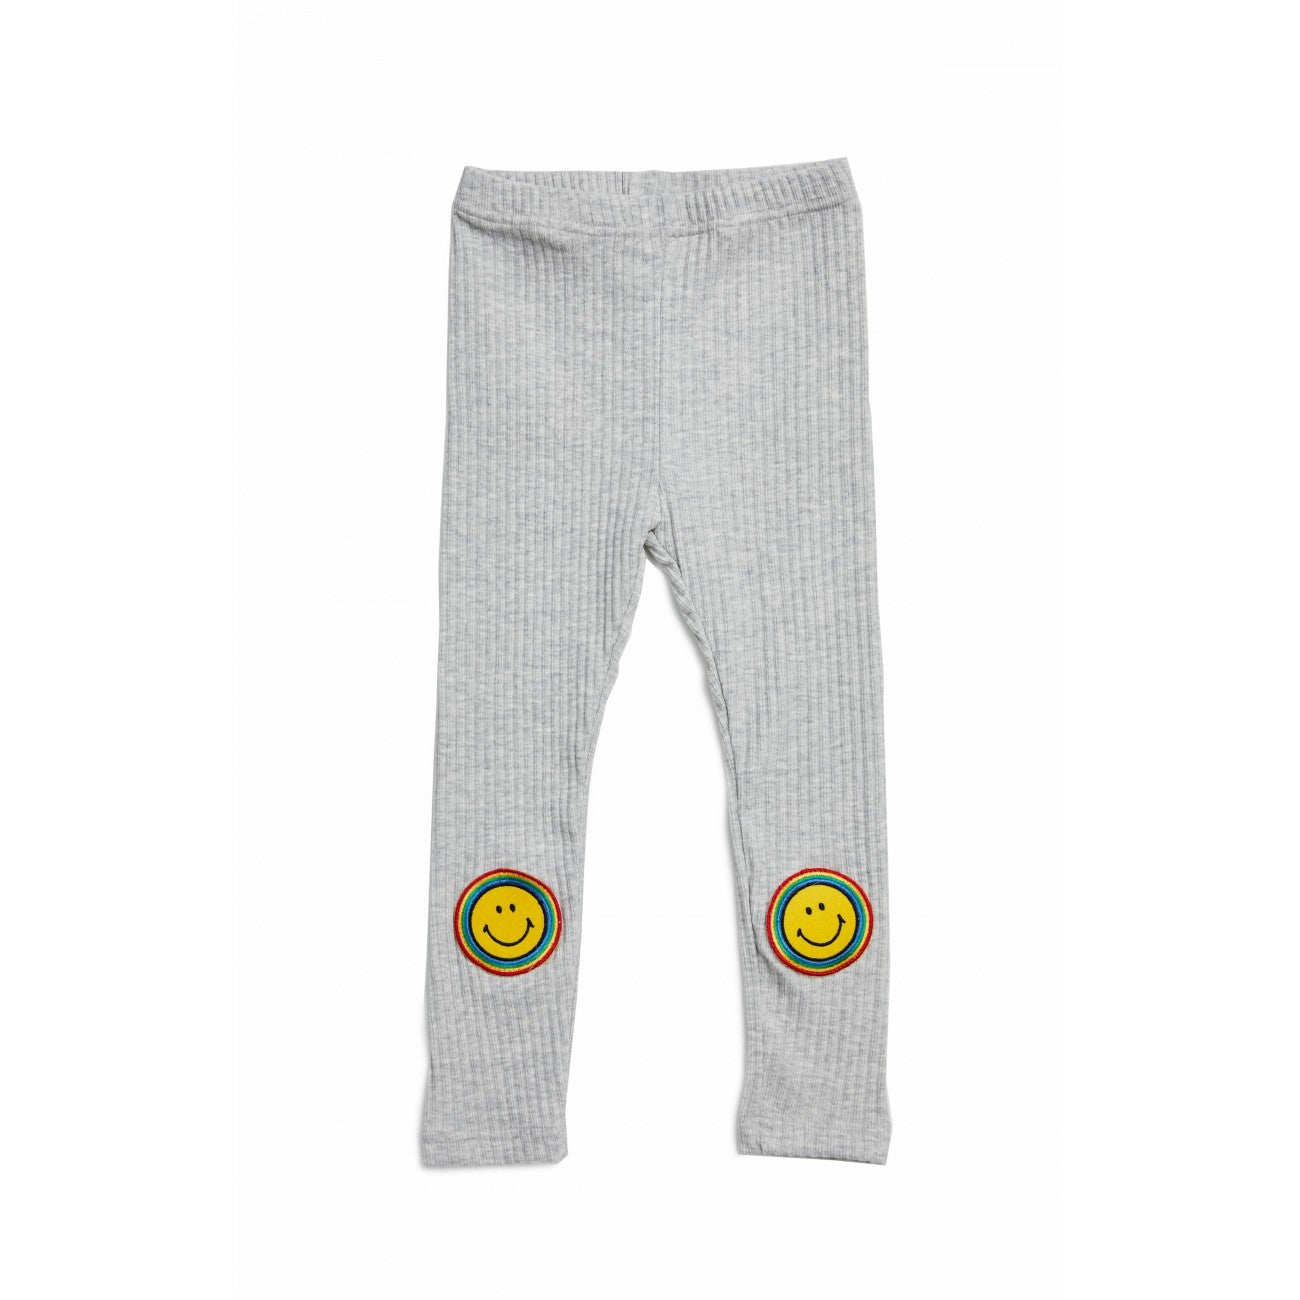 Smile Leggings - Gray